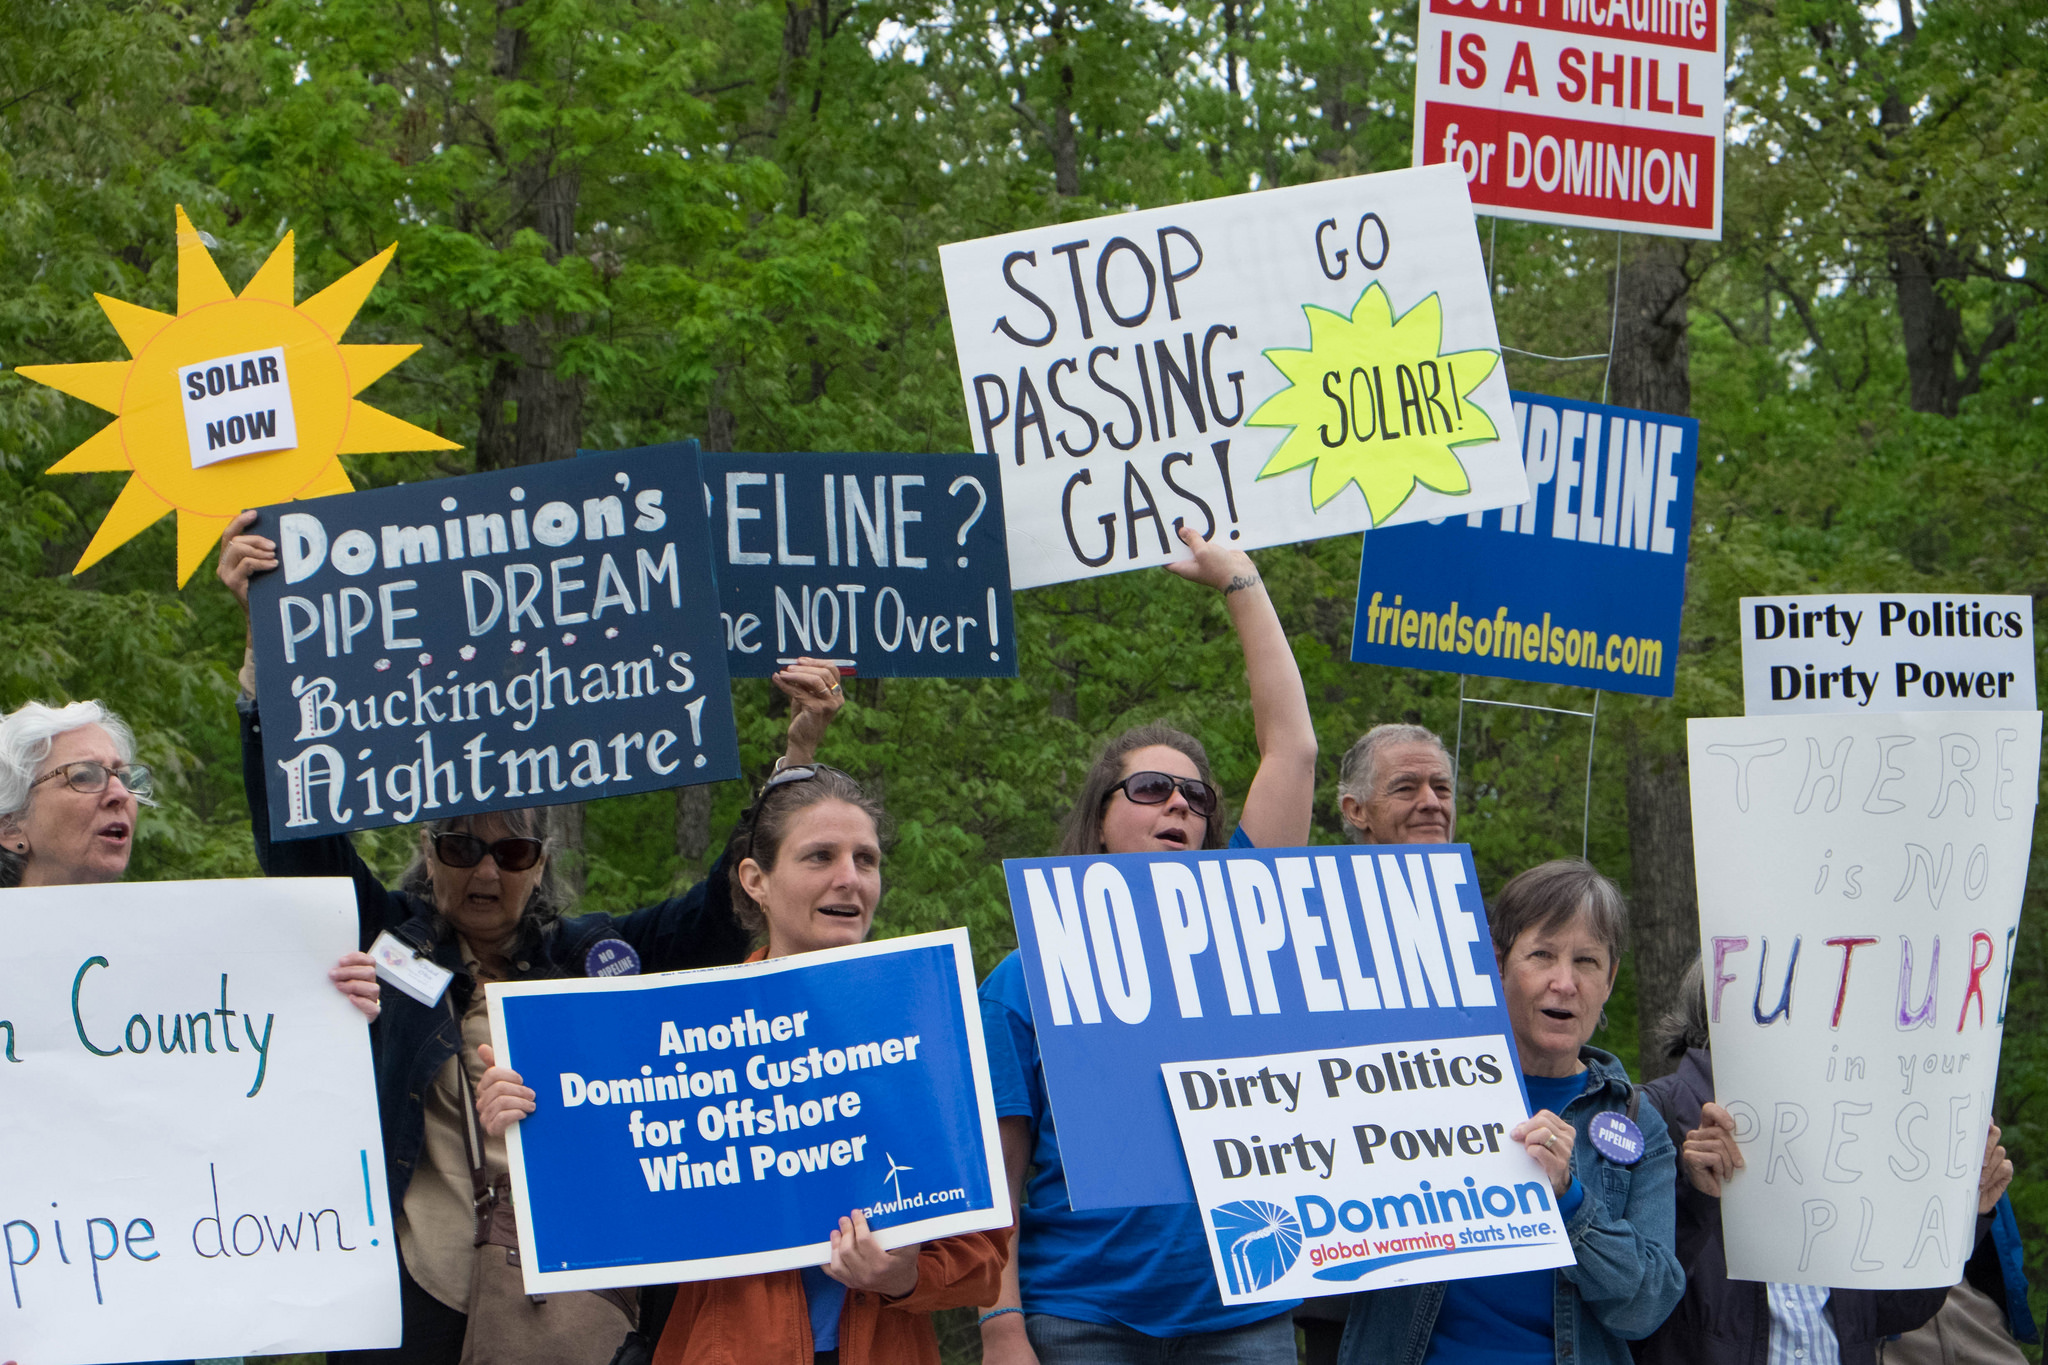 Virginians make it clear they oppose new pipeline infrastructure.